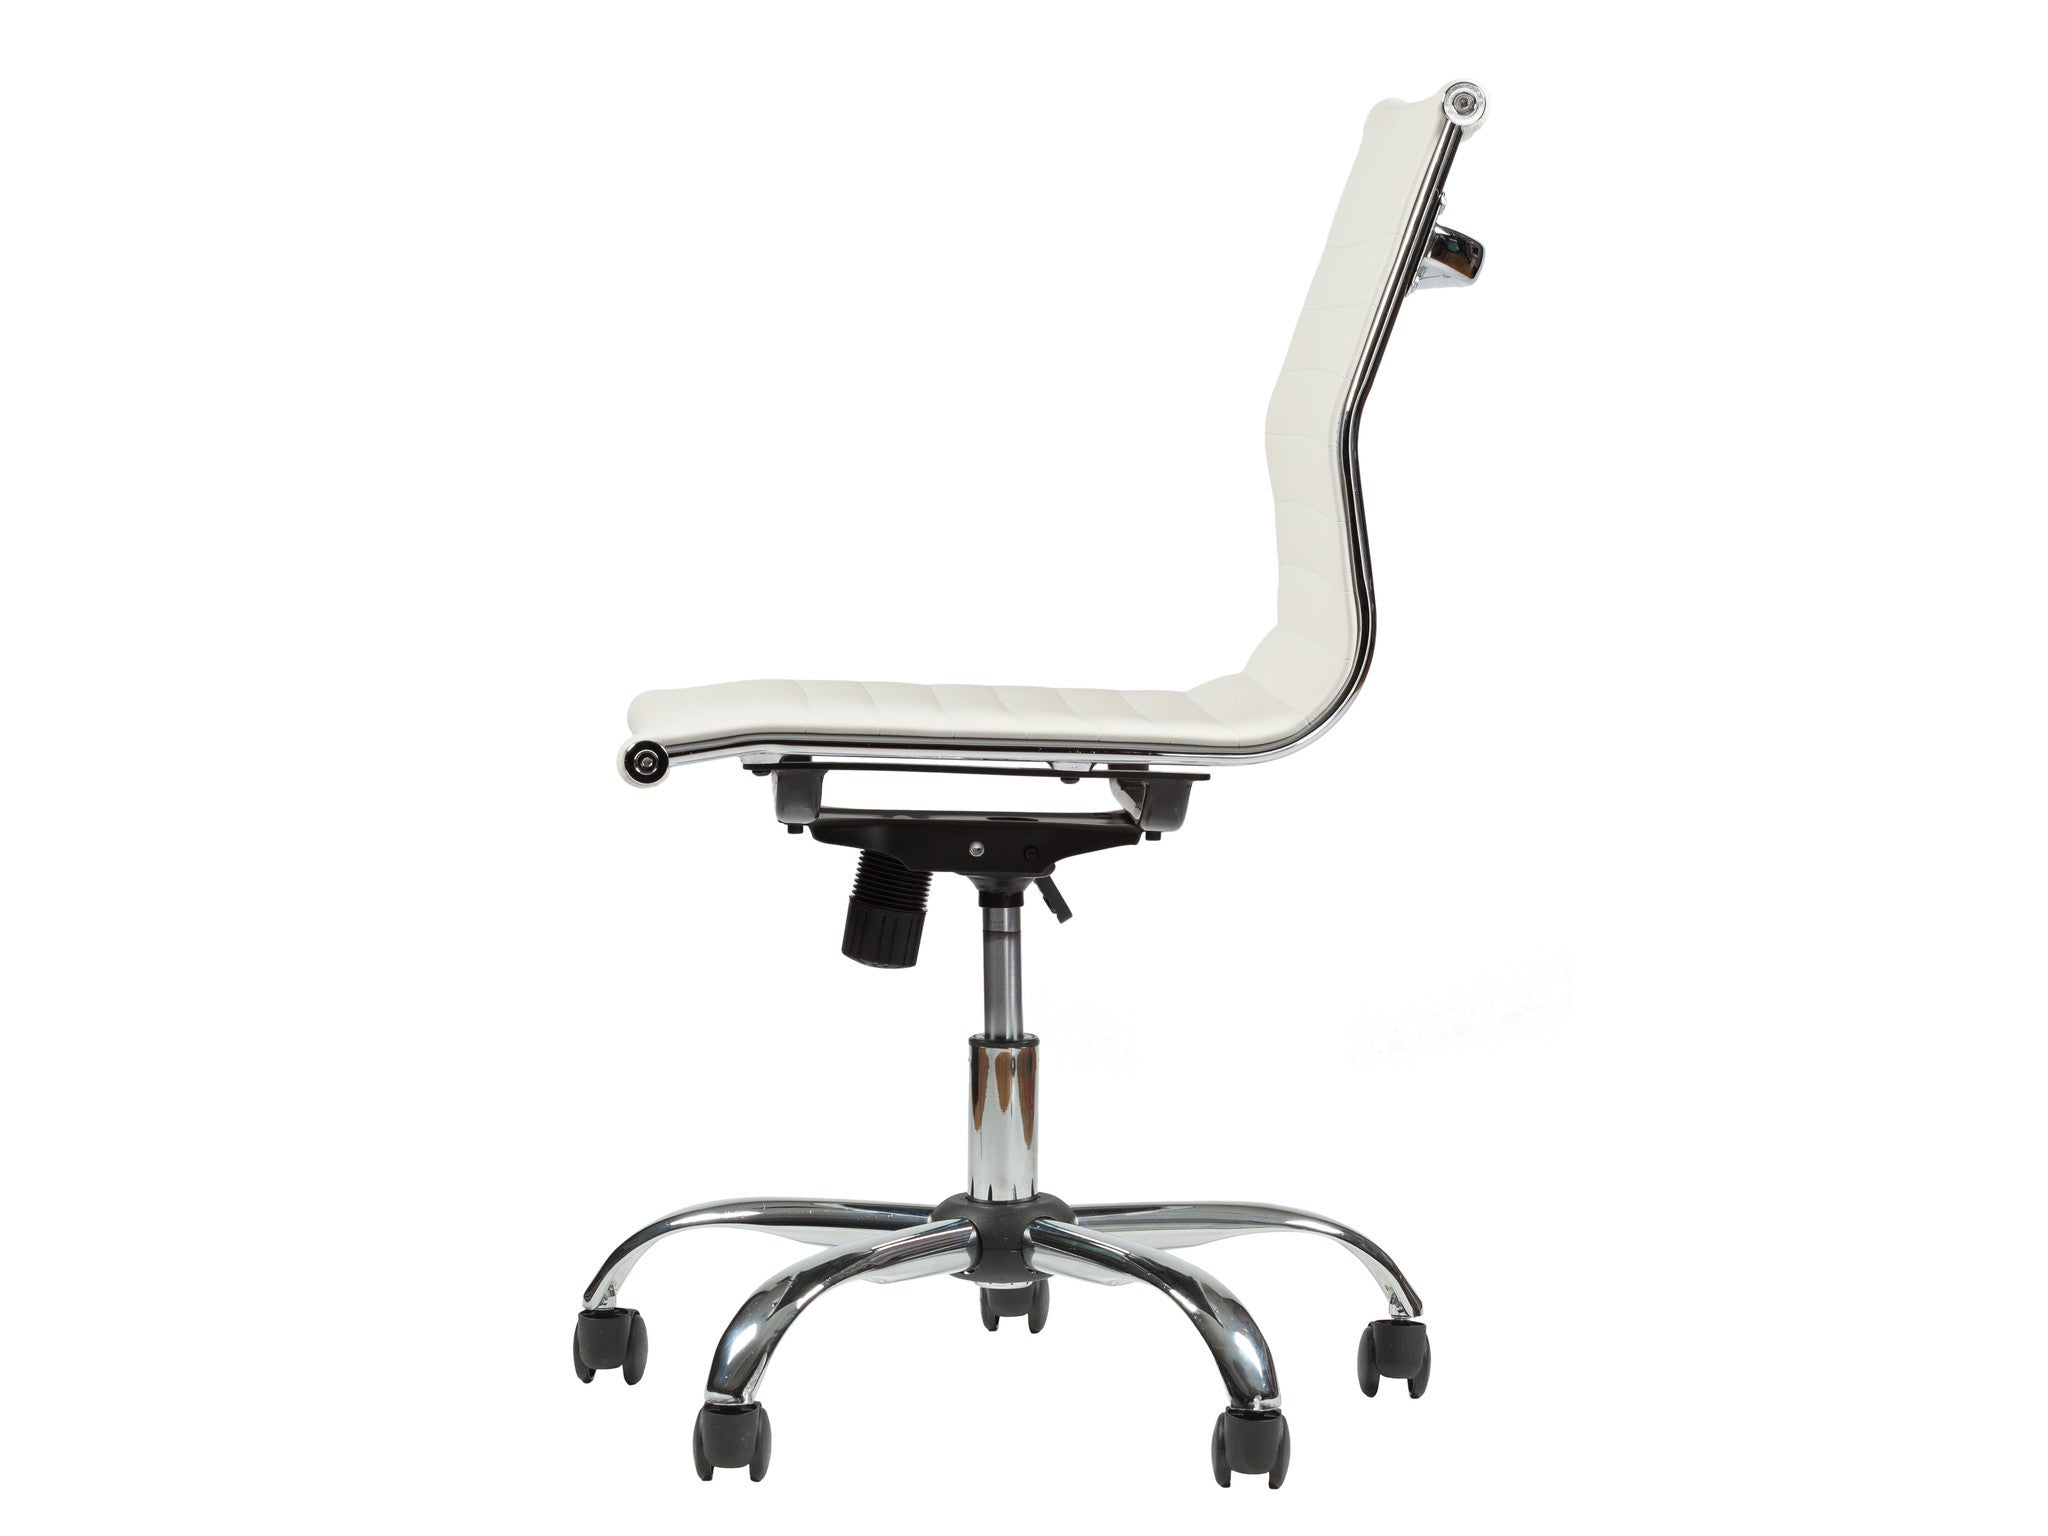 Armless Mid Back Ribbed Upholstered Leather Swivel Office Desk Chair (White)